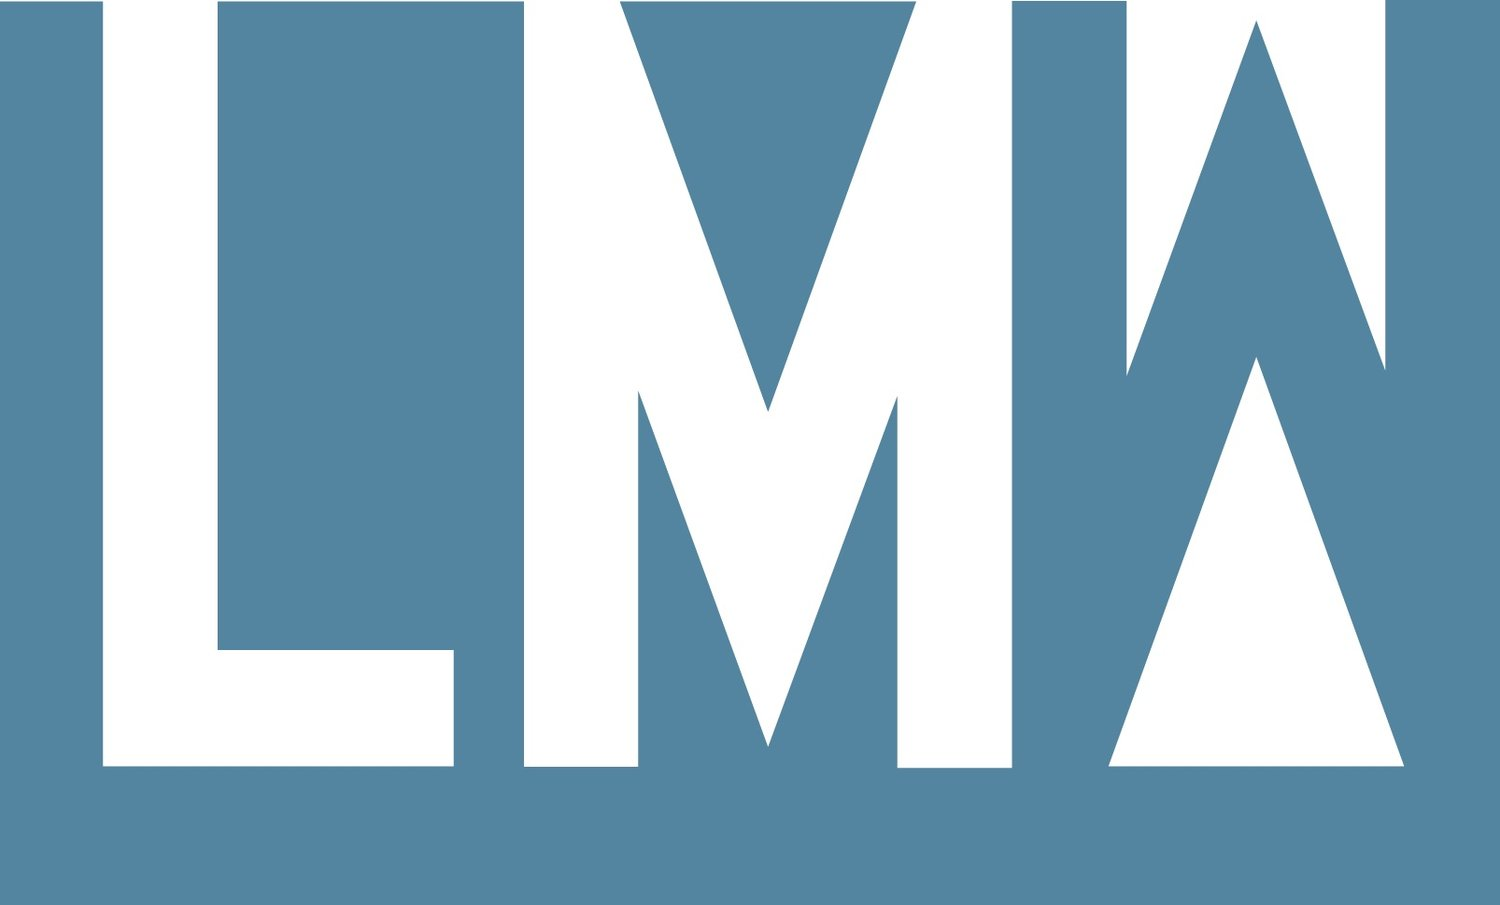 LMW PERSONAL FINANCIAL SERVICES